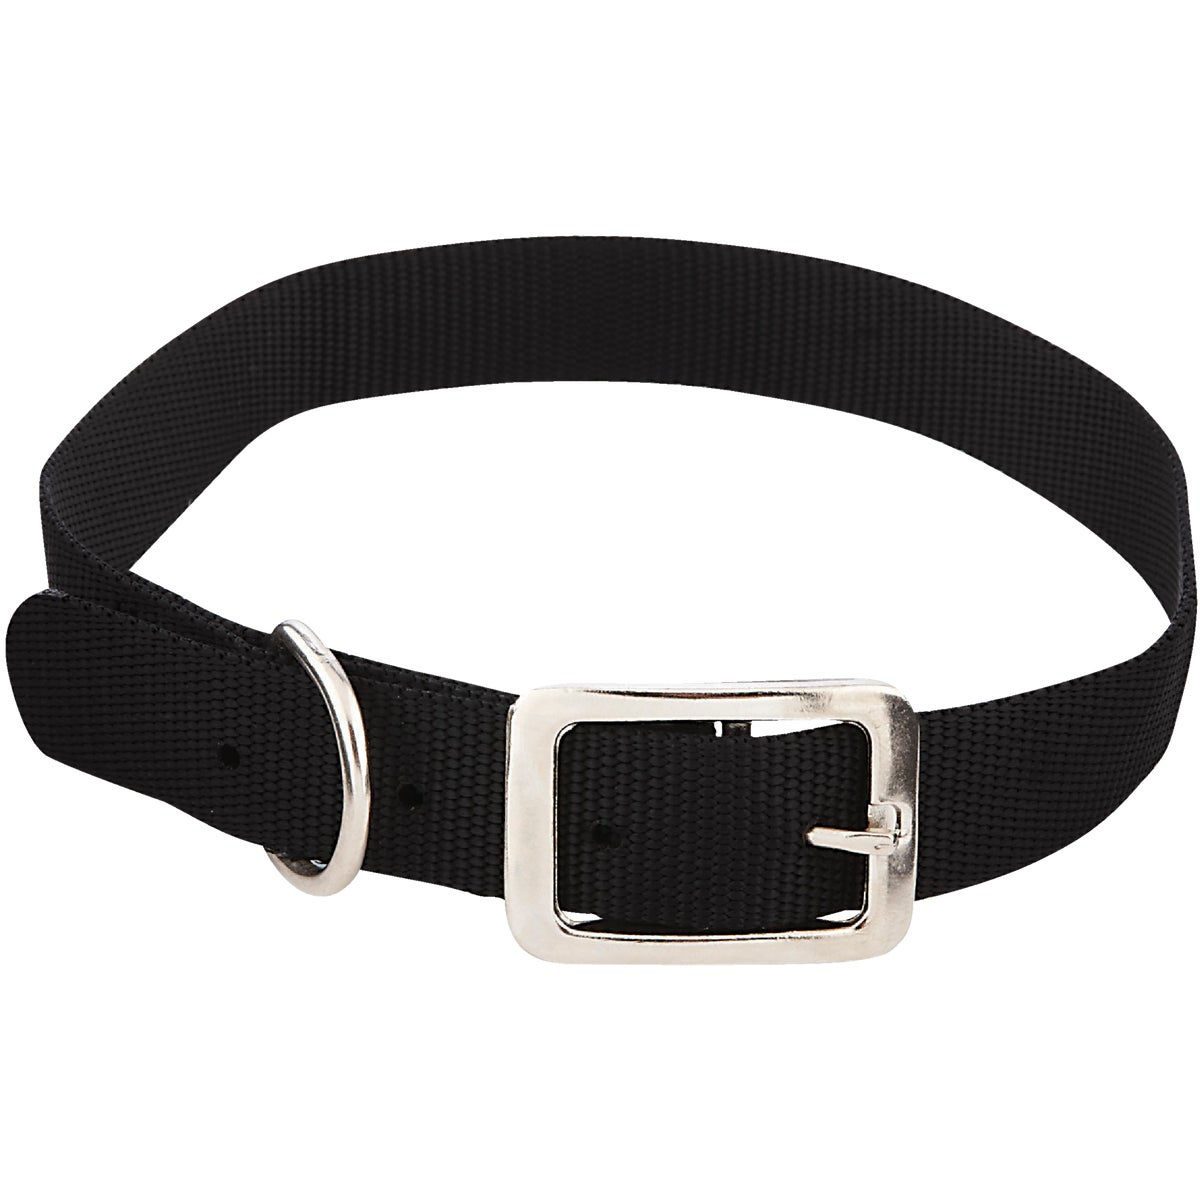 1X24 NYLON COLLAR - 31424 by Westminster Pet